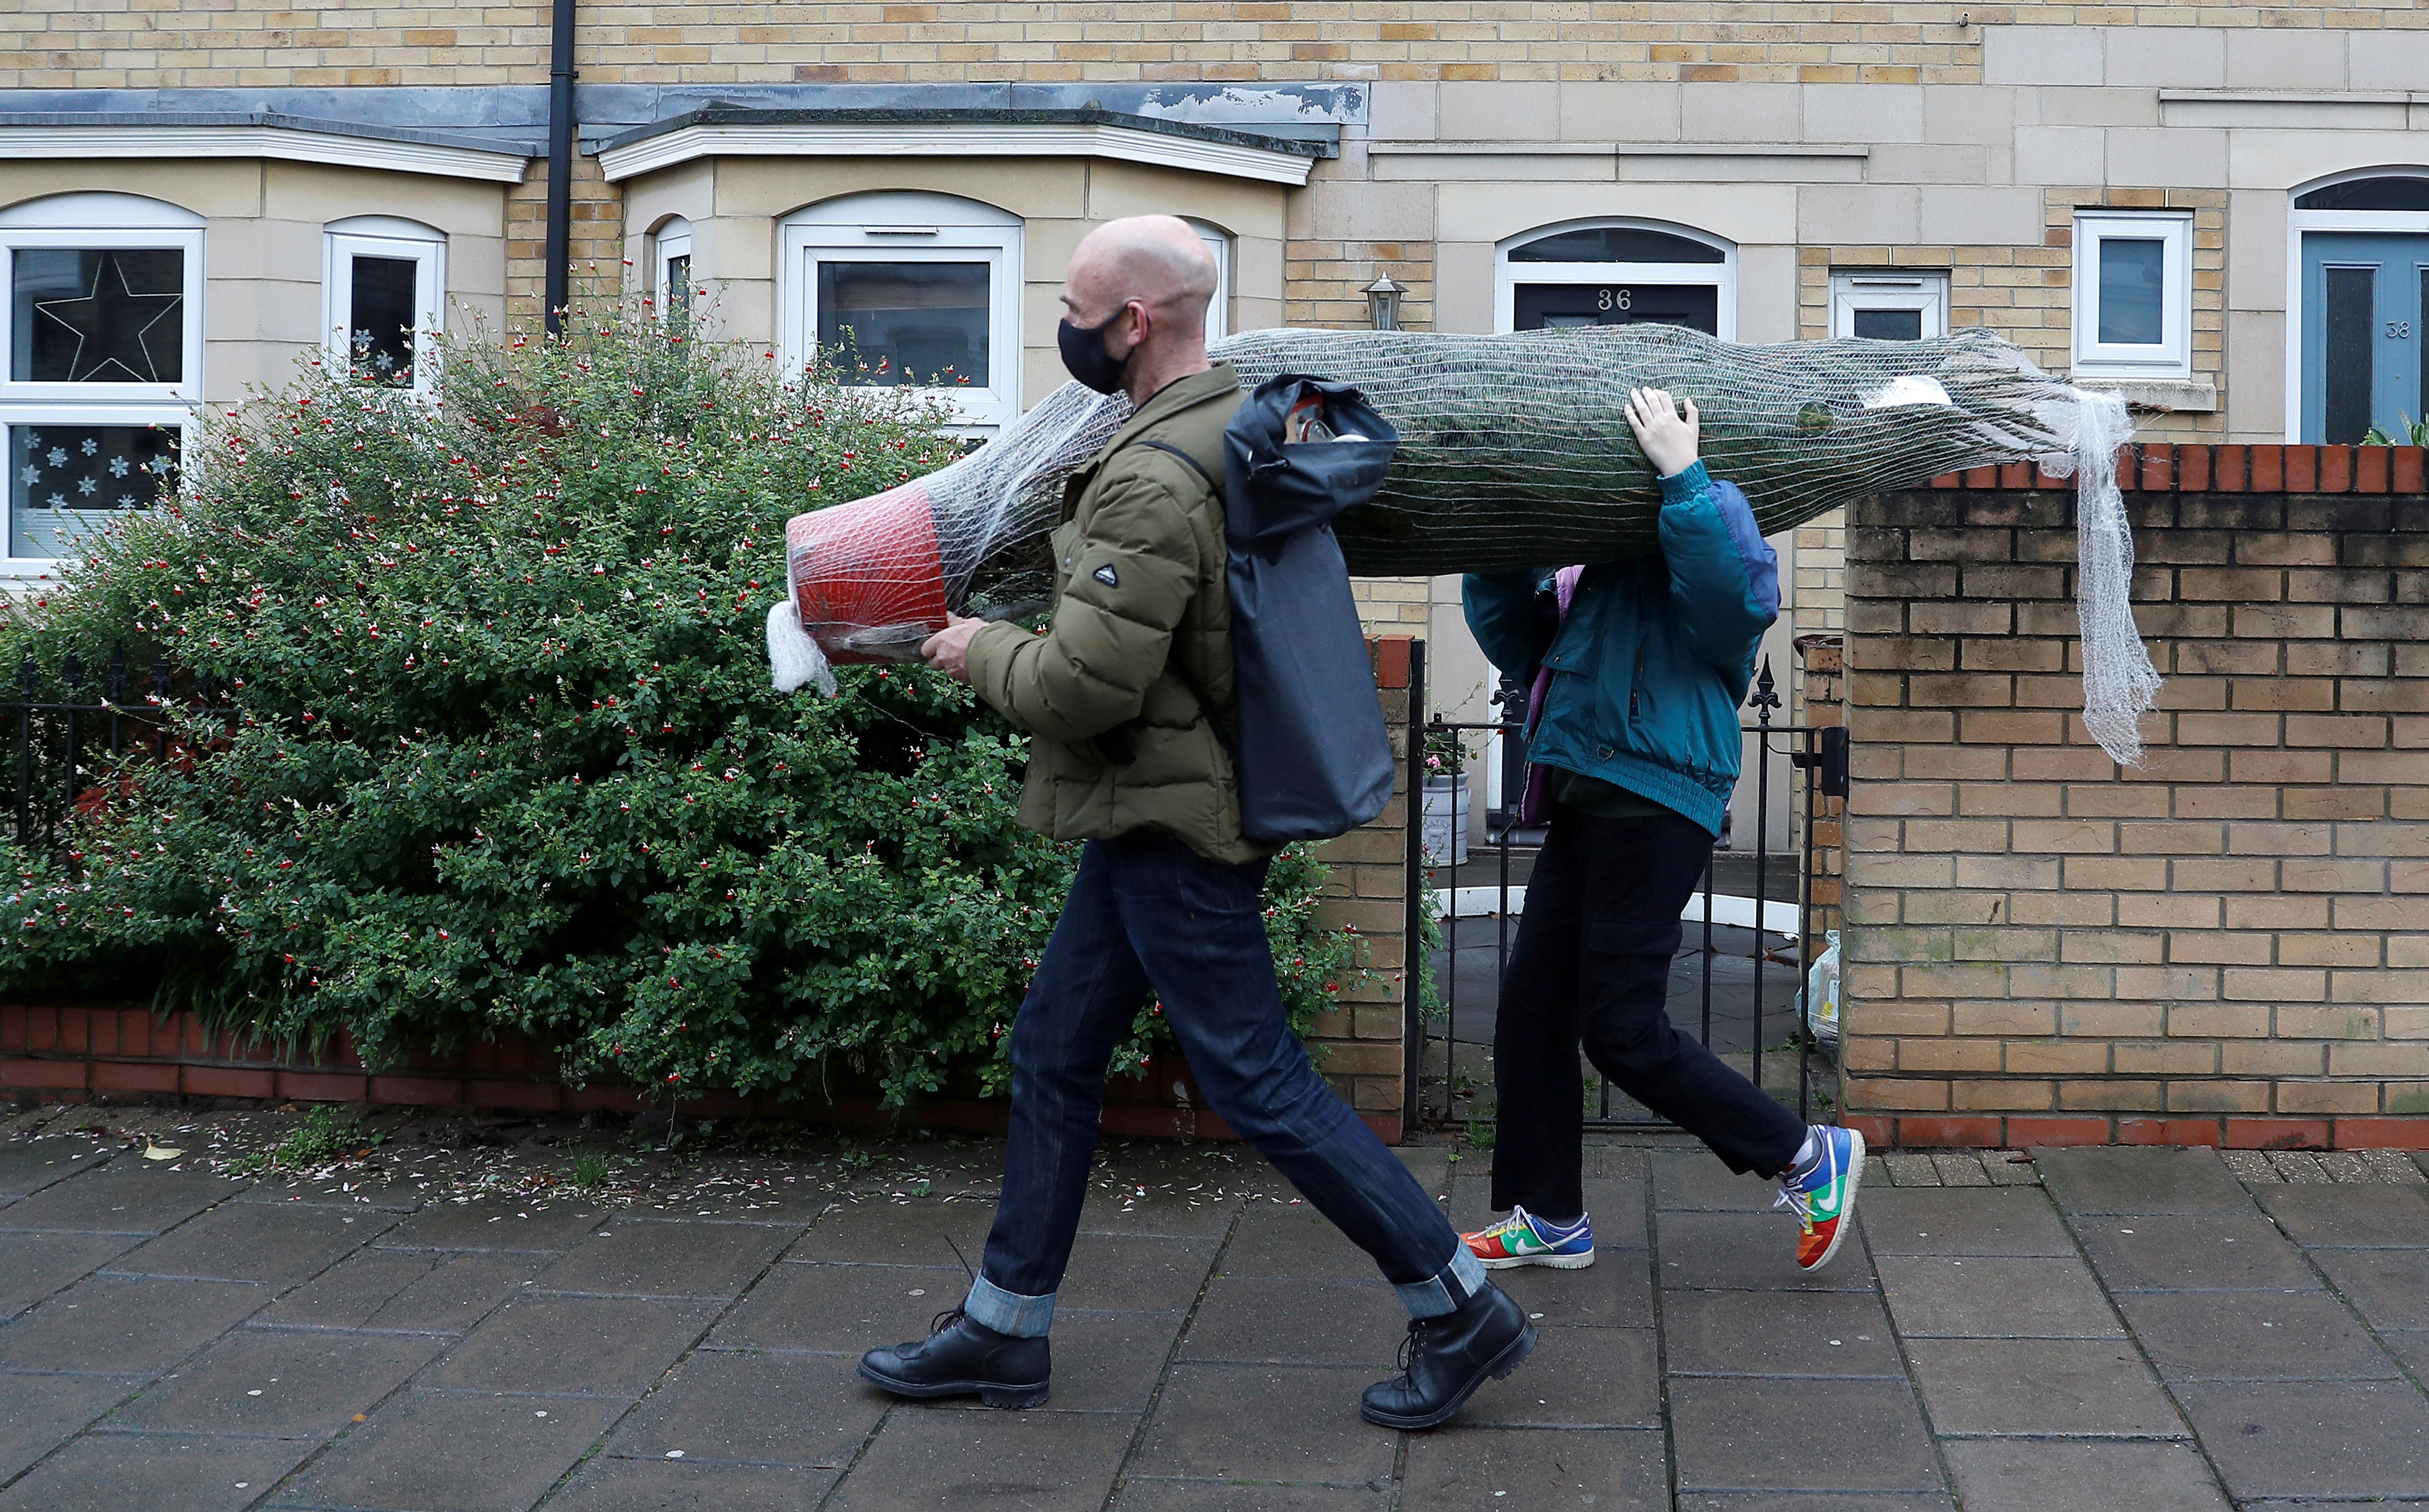 Edgar Schmitz and his daughter Greta carry their rented Christmas tree away from Christmas on The Hill in London, Britain, December 12, 2020. Picture taken December 12, 2020.